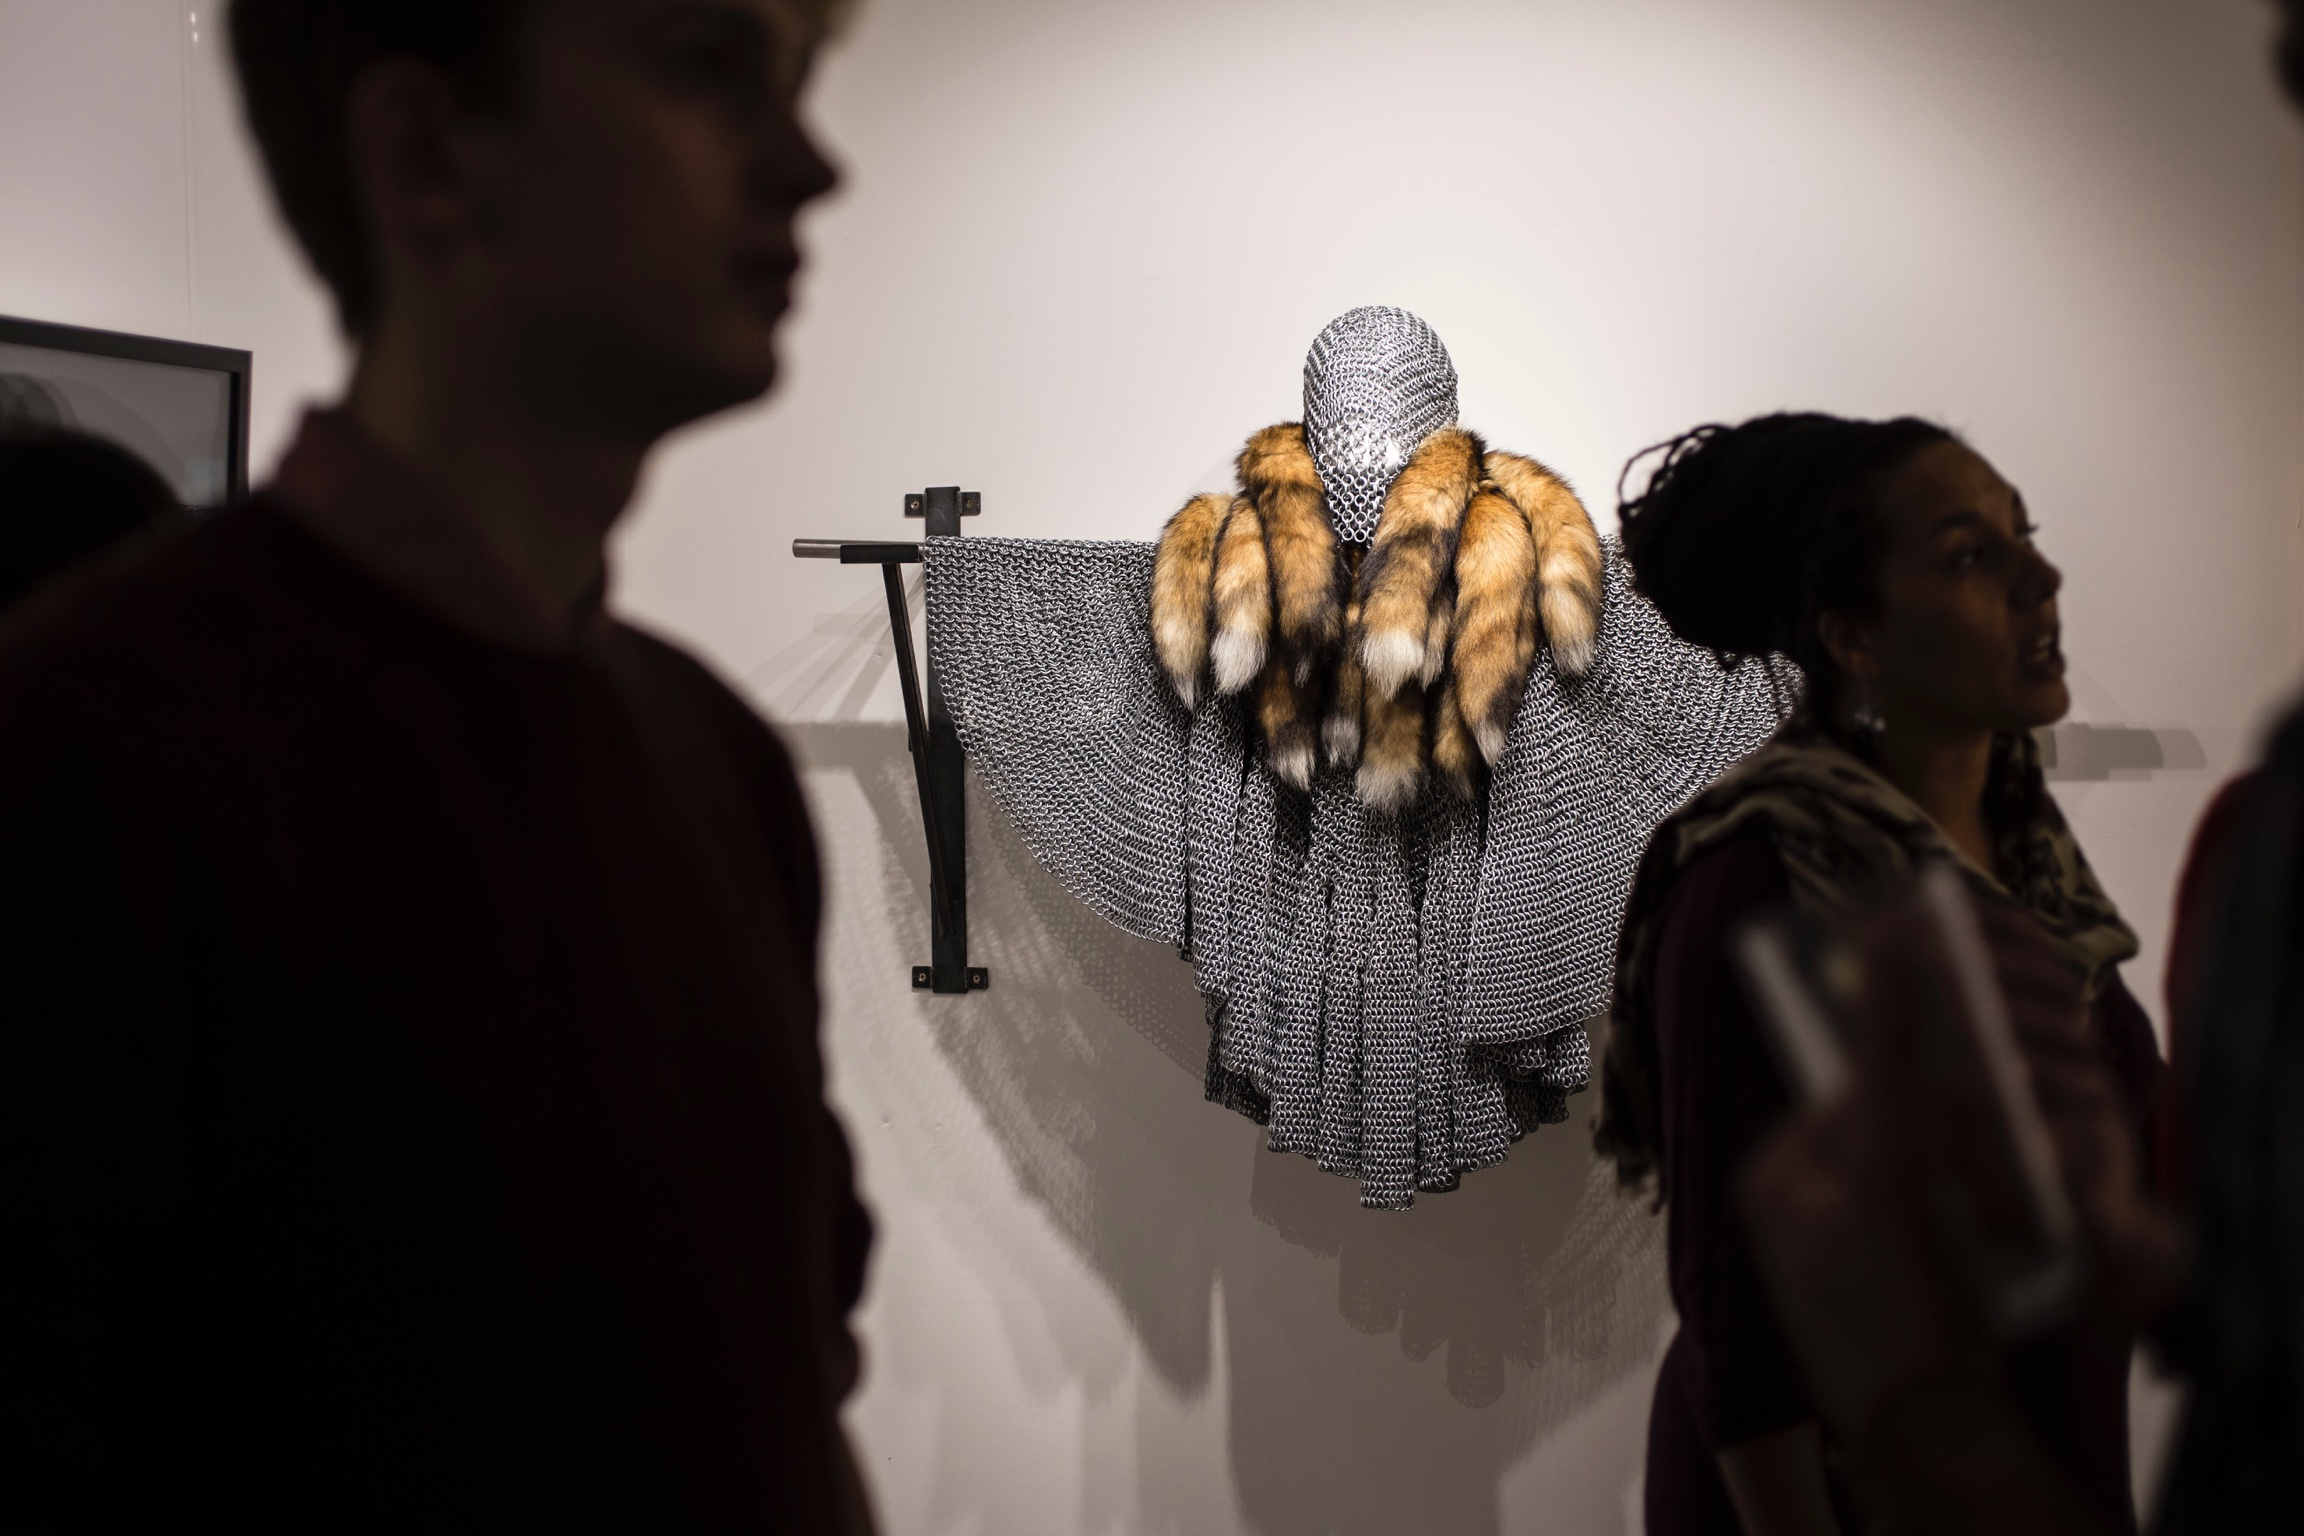 The 'Chainmail' on display in the gallery and weighing in at 65kgs was worn by Solomon Golding in the film. Photo ©Anna Burdick